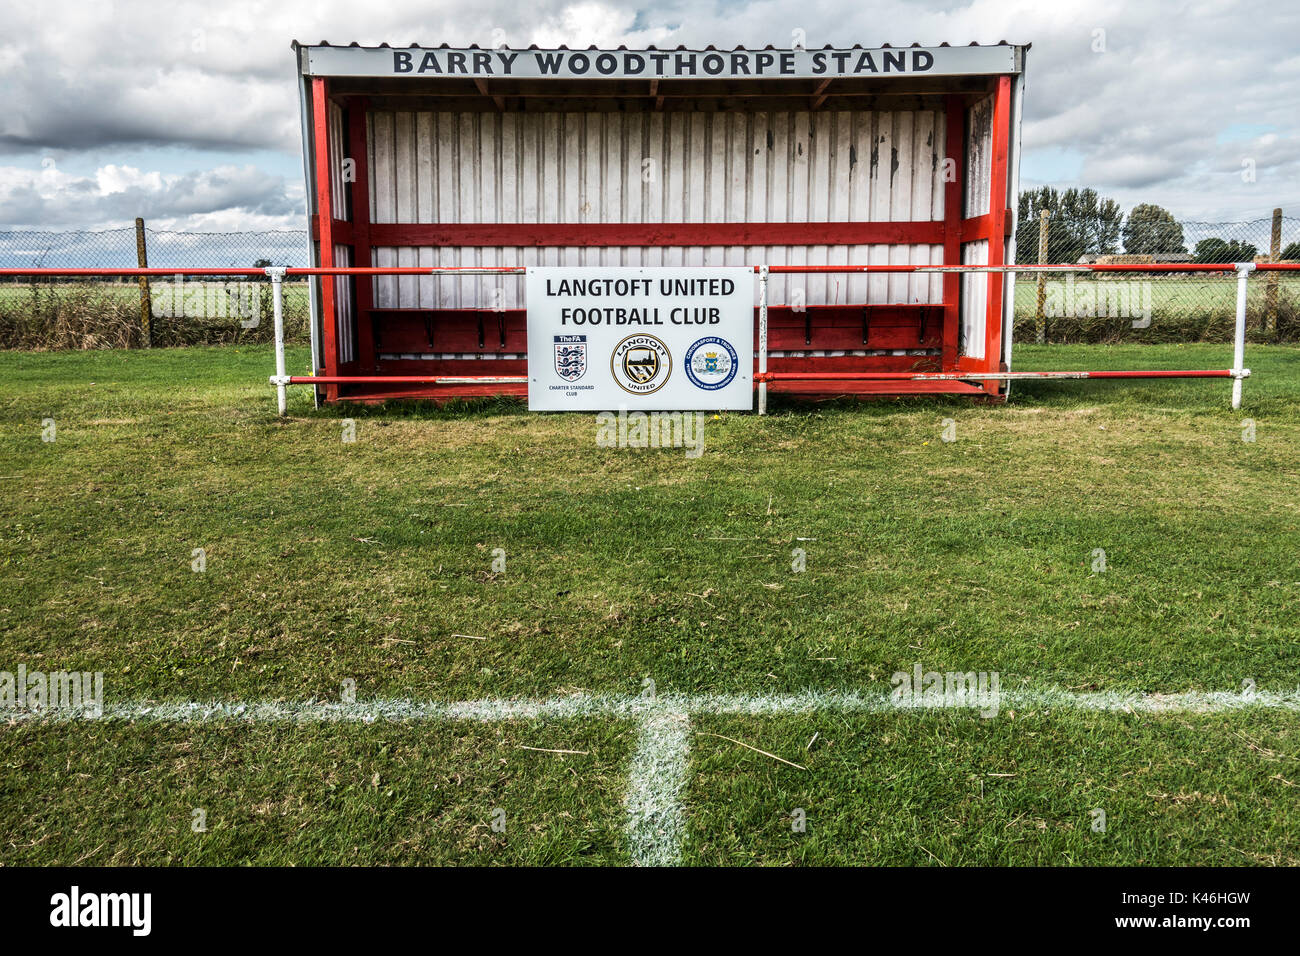 Grass roots football. Basic corrugated metal match stand for team personnel. Langtoft United Football Club home ground, Lincolnshire, England, UK. - Stock Image